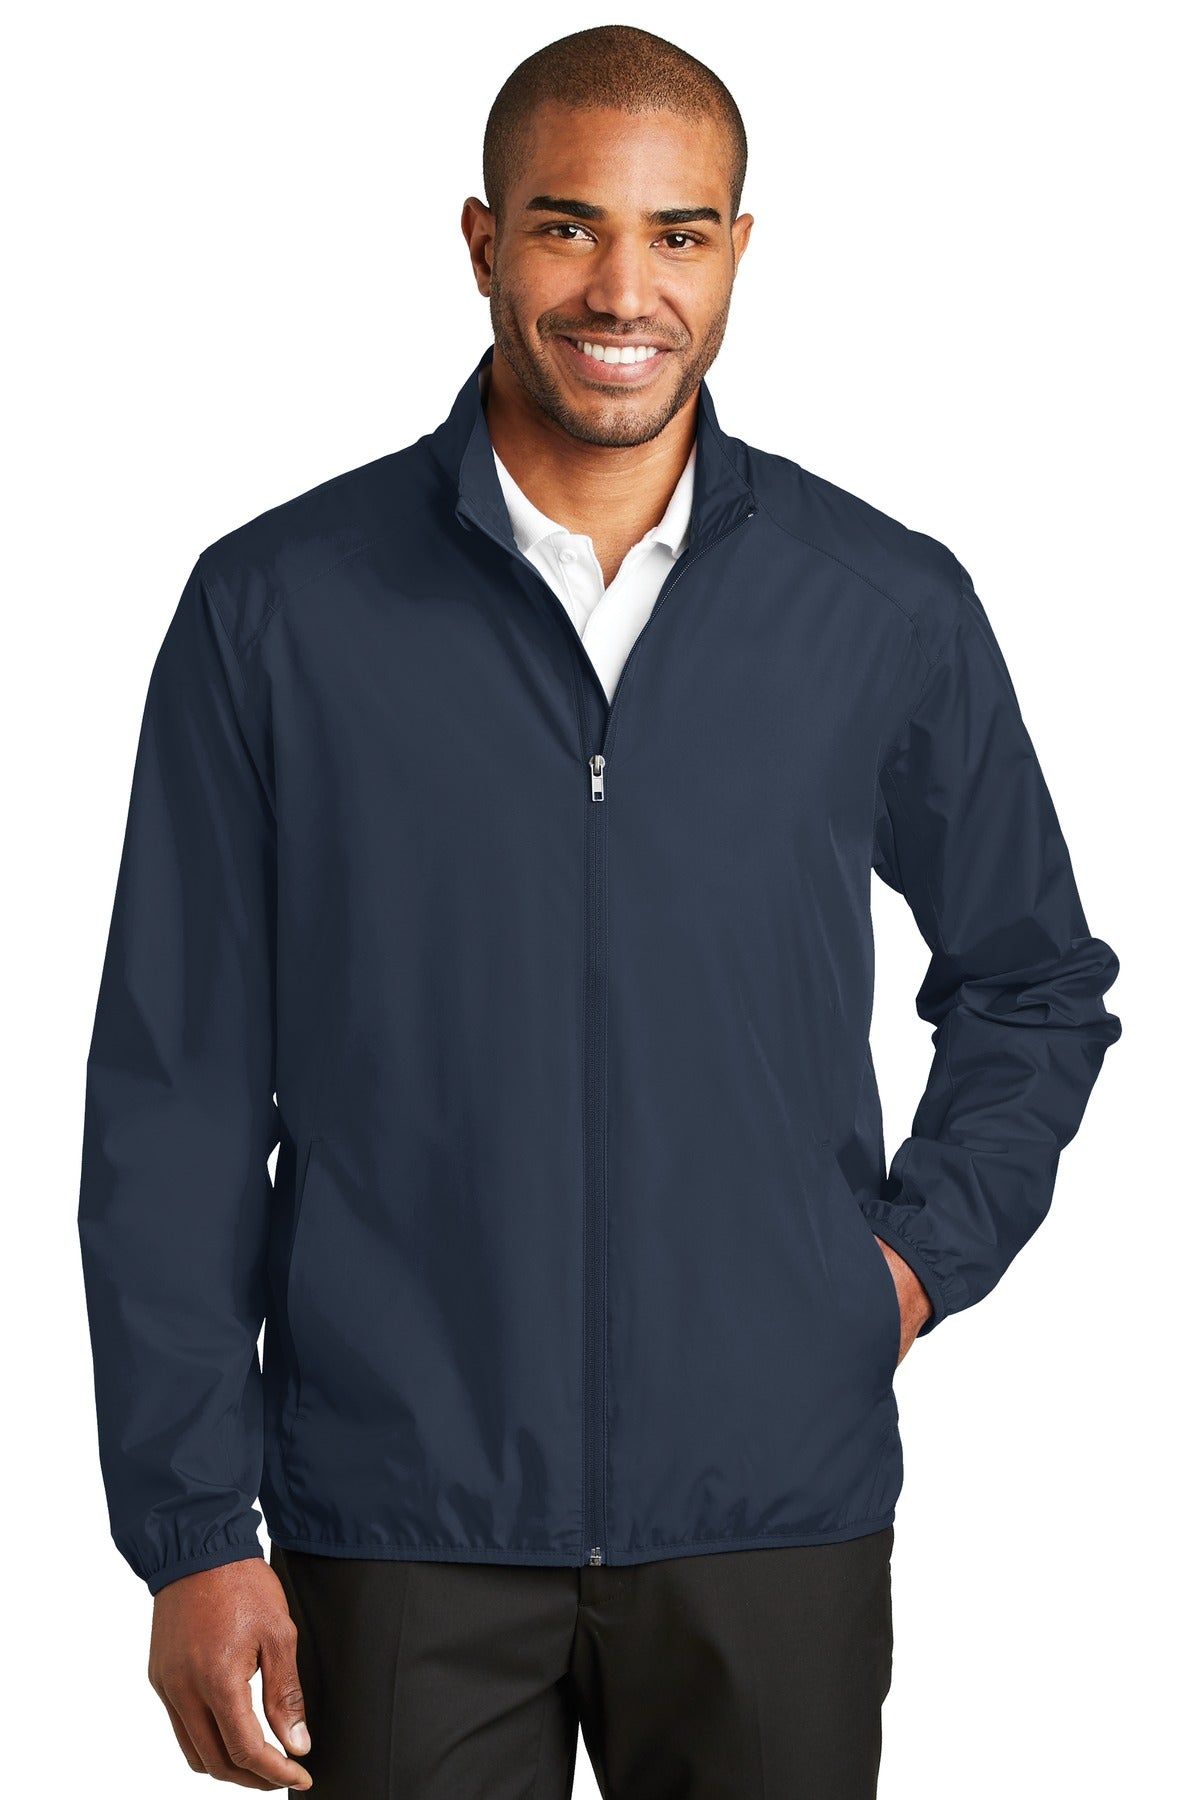 Gusty Grey Port Authority Core Classic Pique Polo.